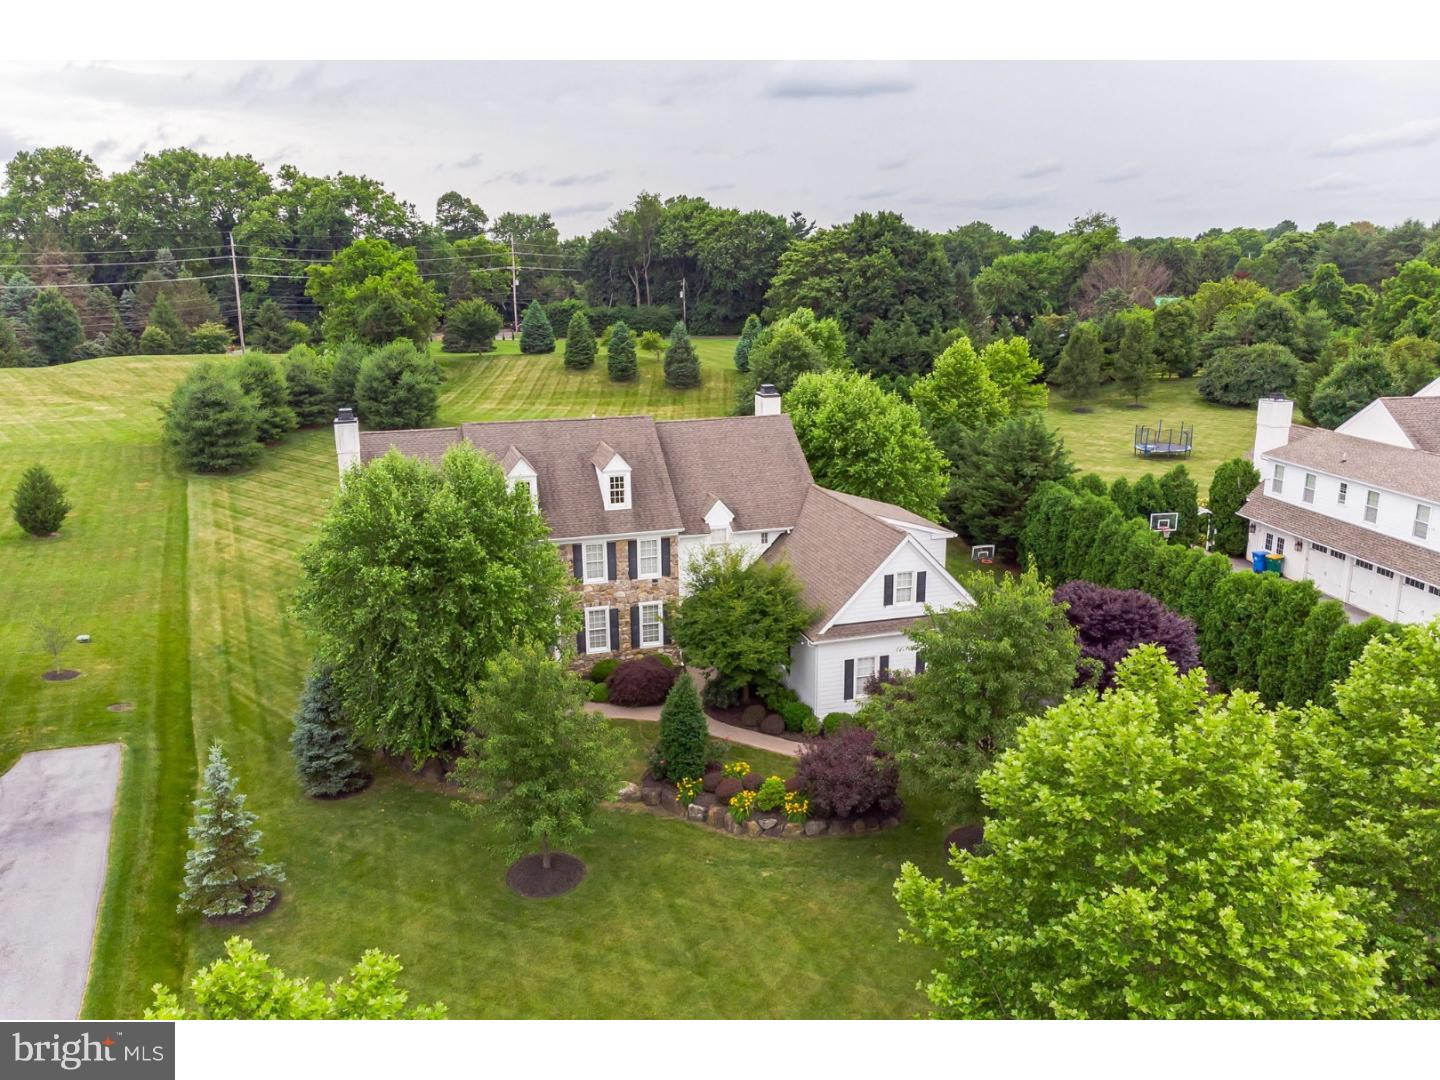 1036 Brick House Farm Lane Newtown Square, PA 19073